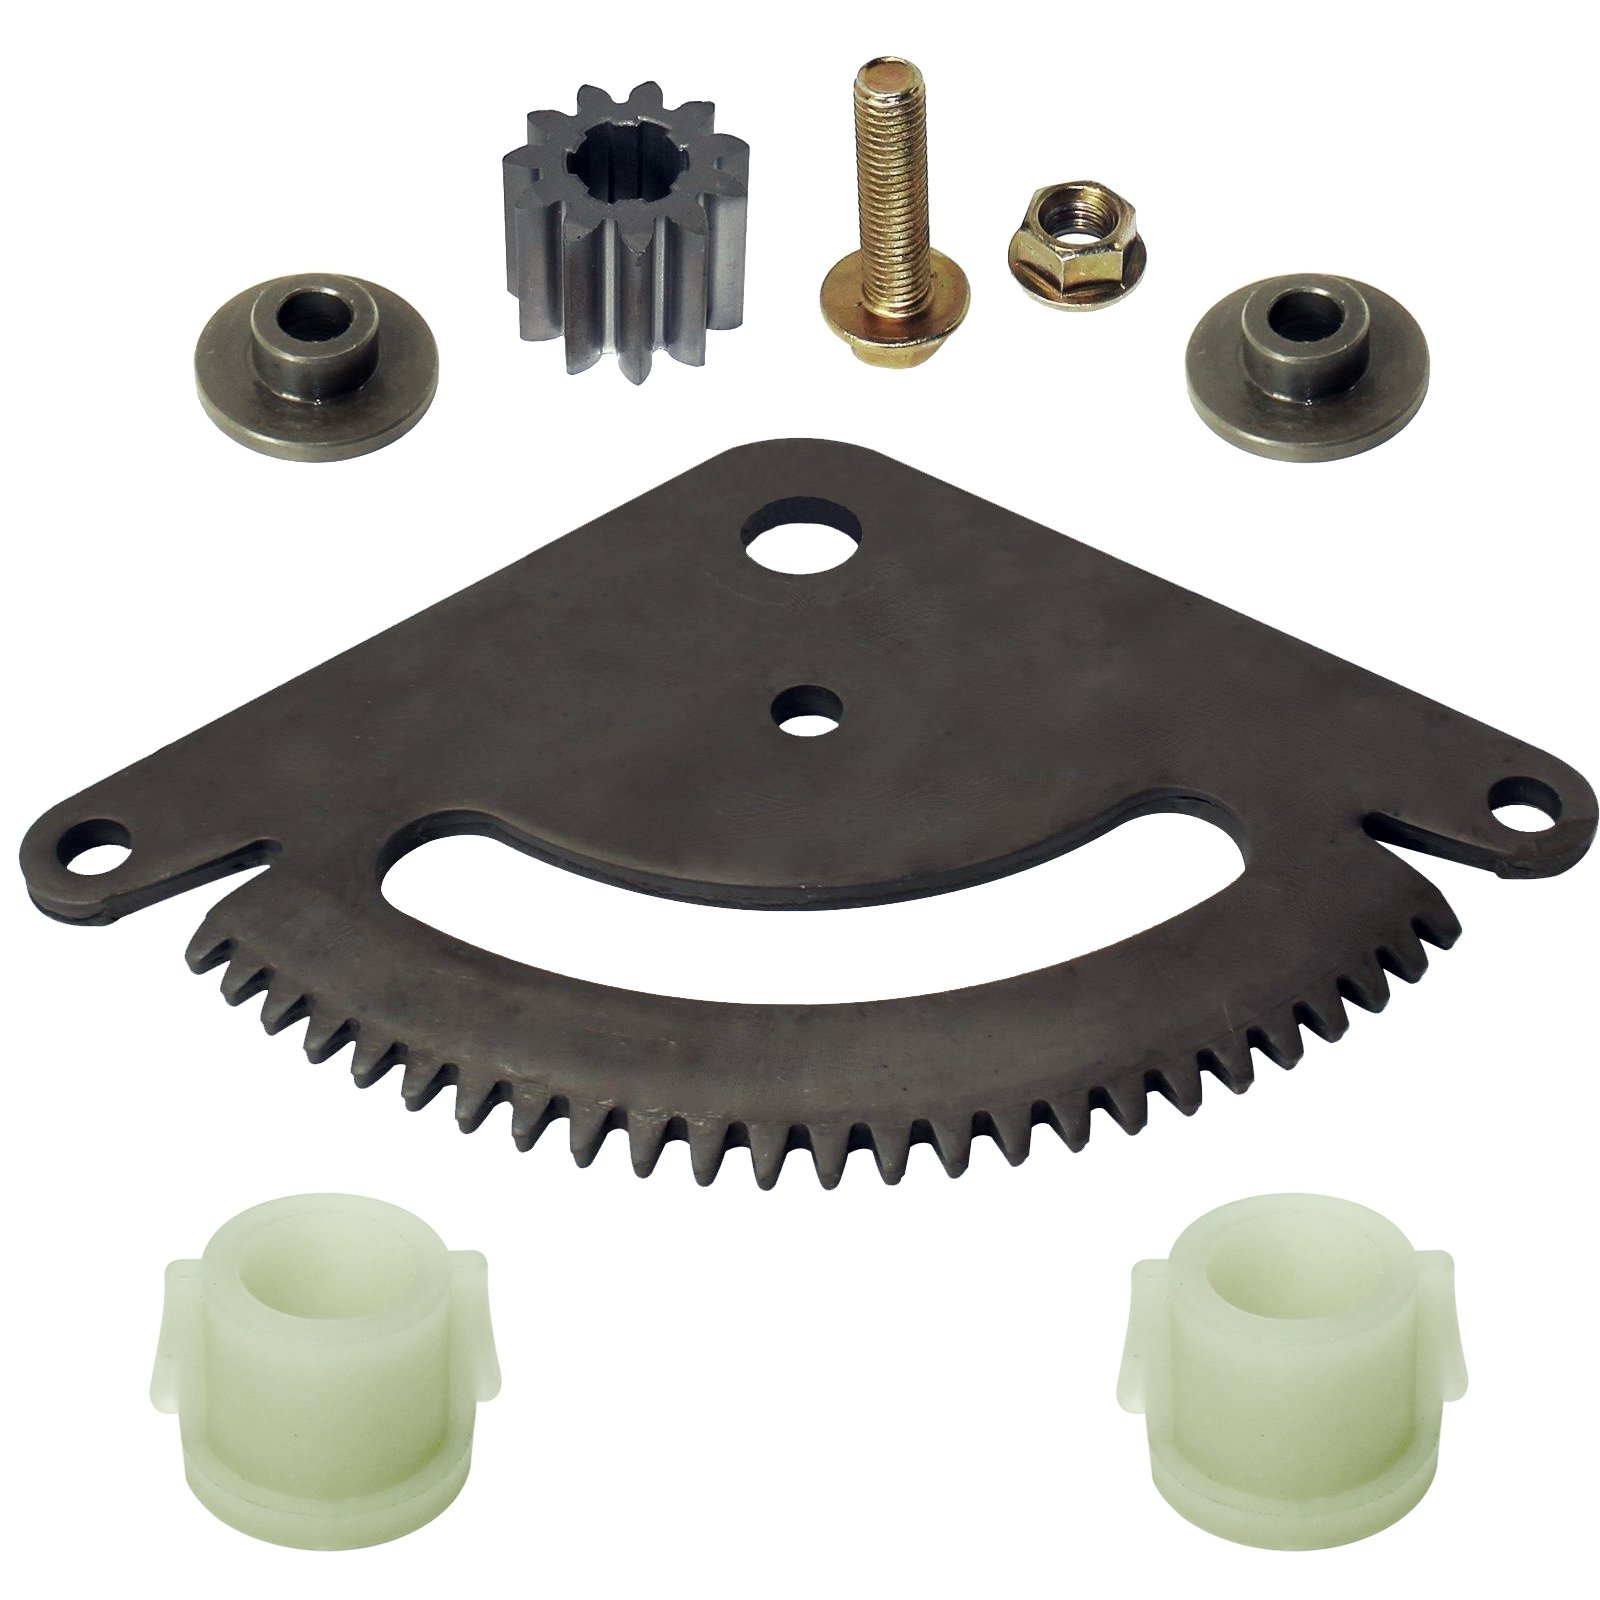 CALTRIC SELECTIVE SECTOR GEAR PINION GEAR w/BUSHING FIT JOHN DEERE SABRE 17.542HS 1742HS by Caltric